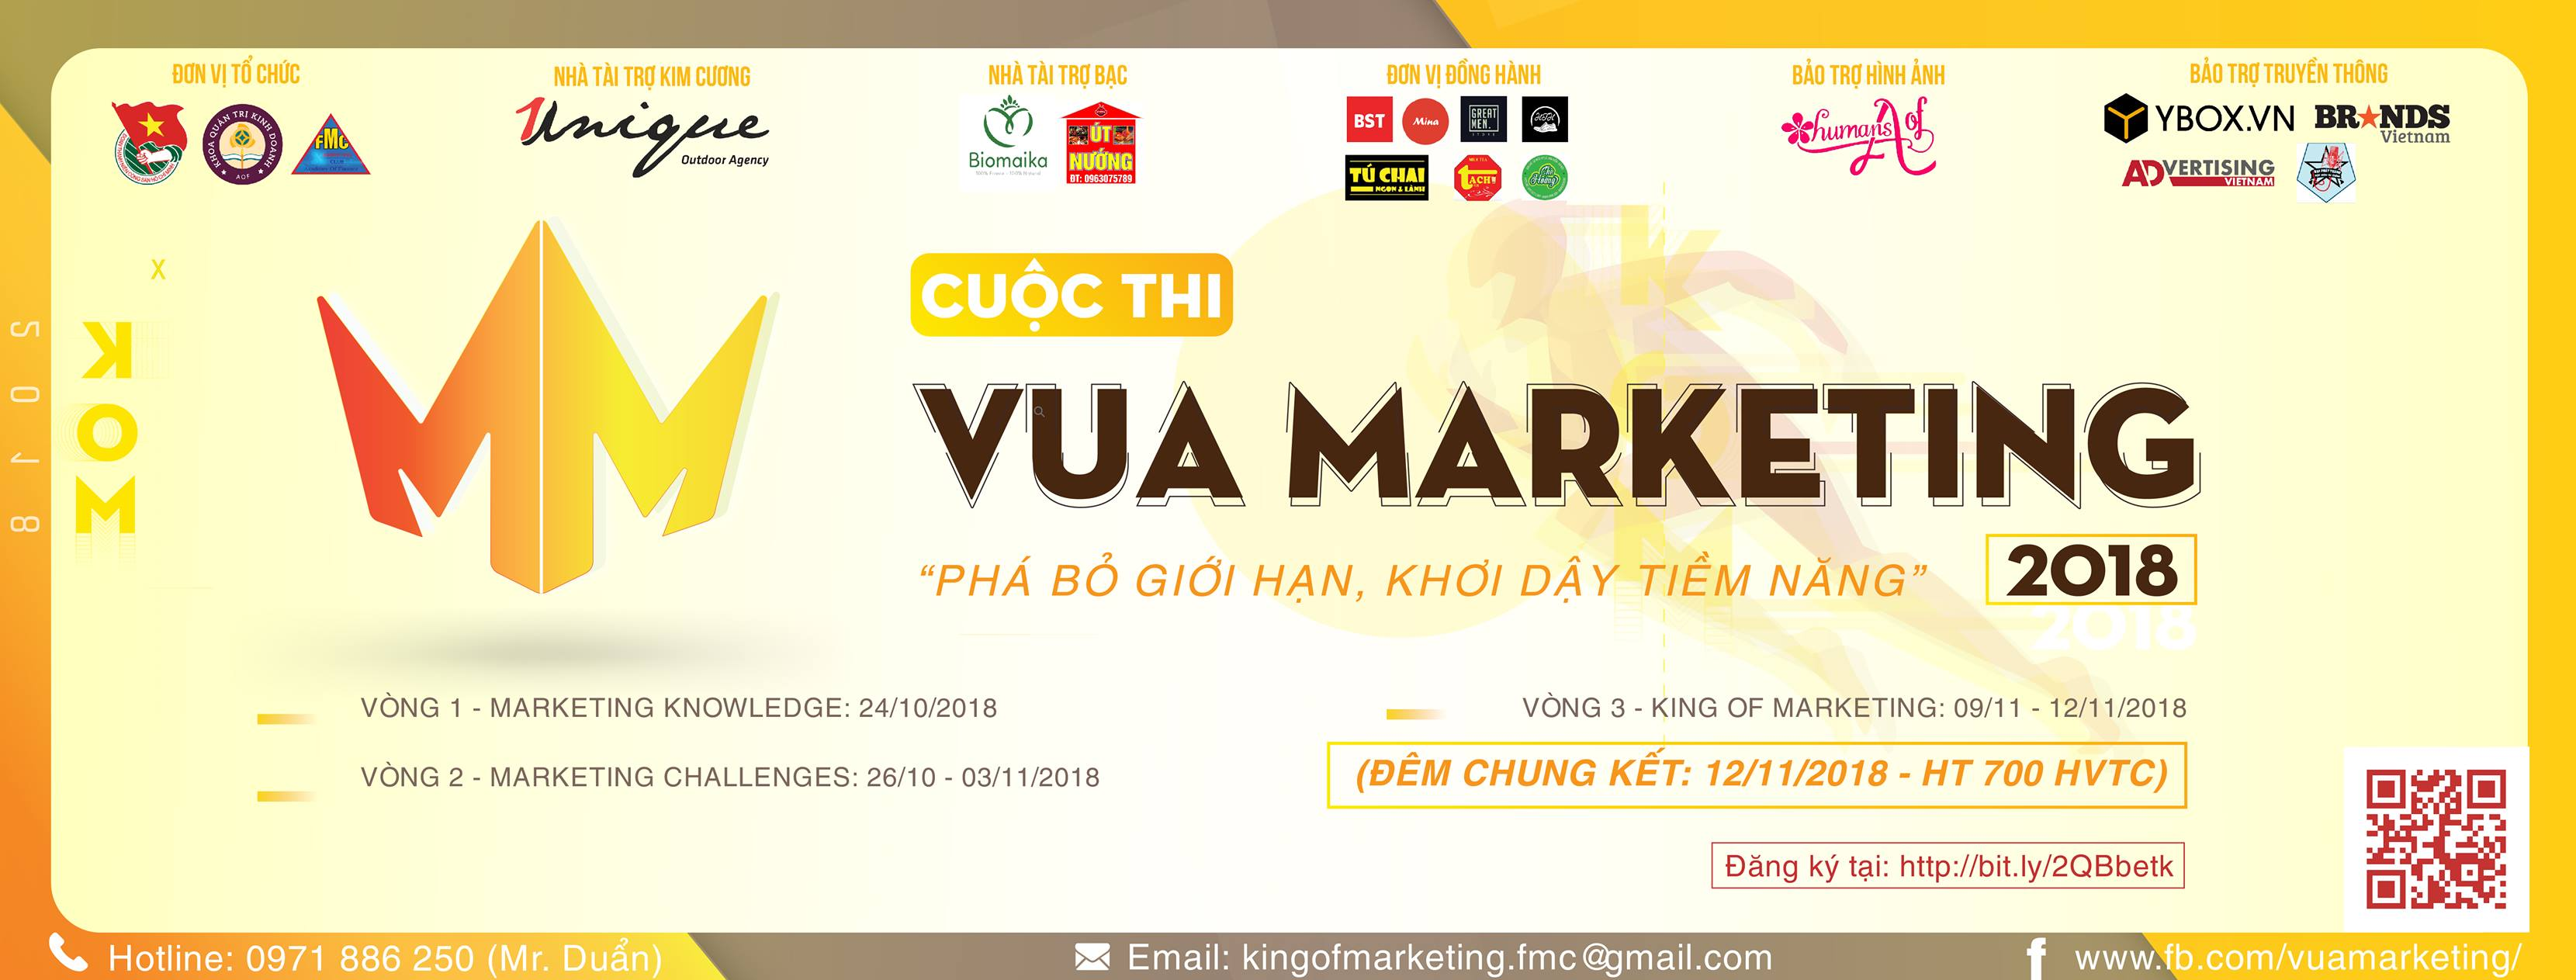 unique đồng hành cùng vua marketing